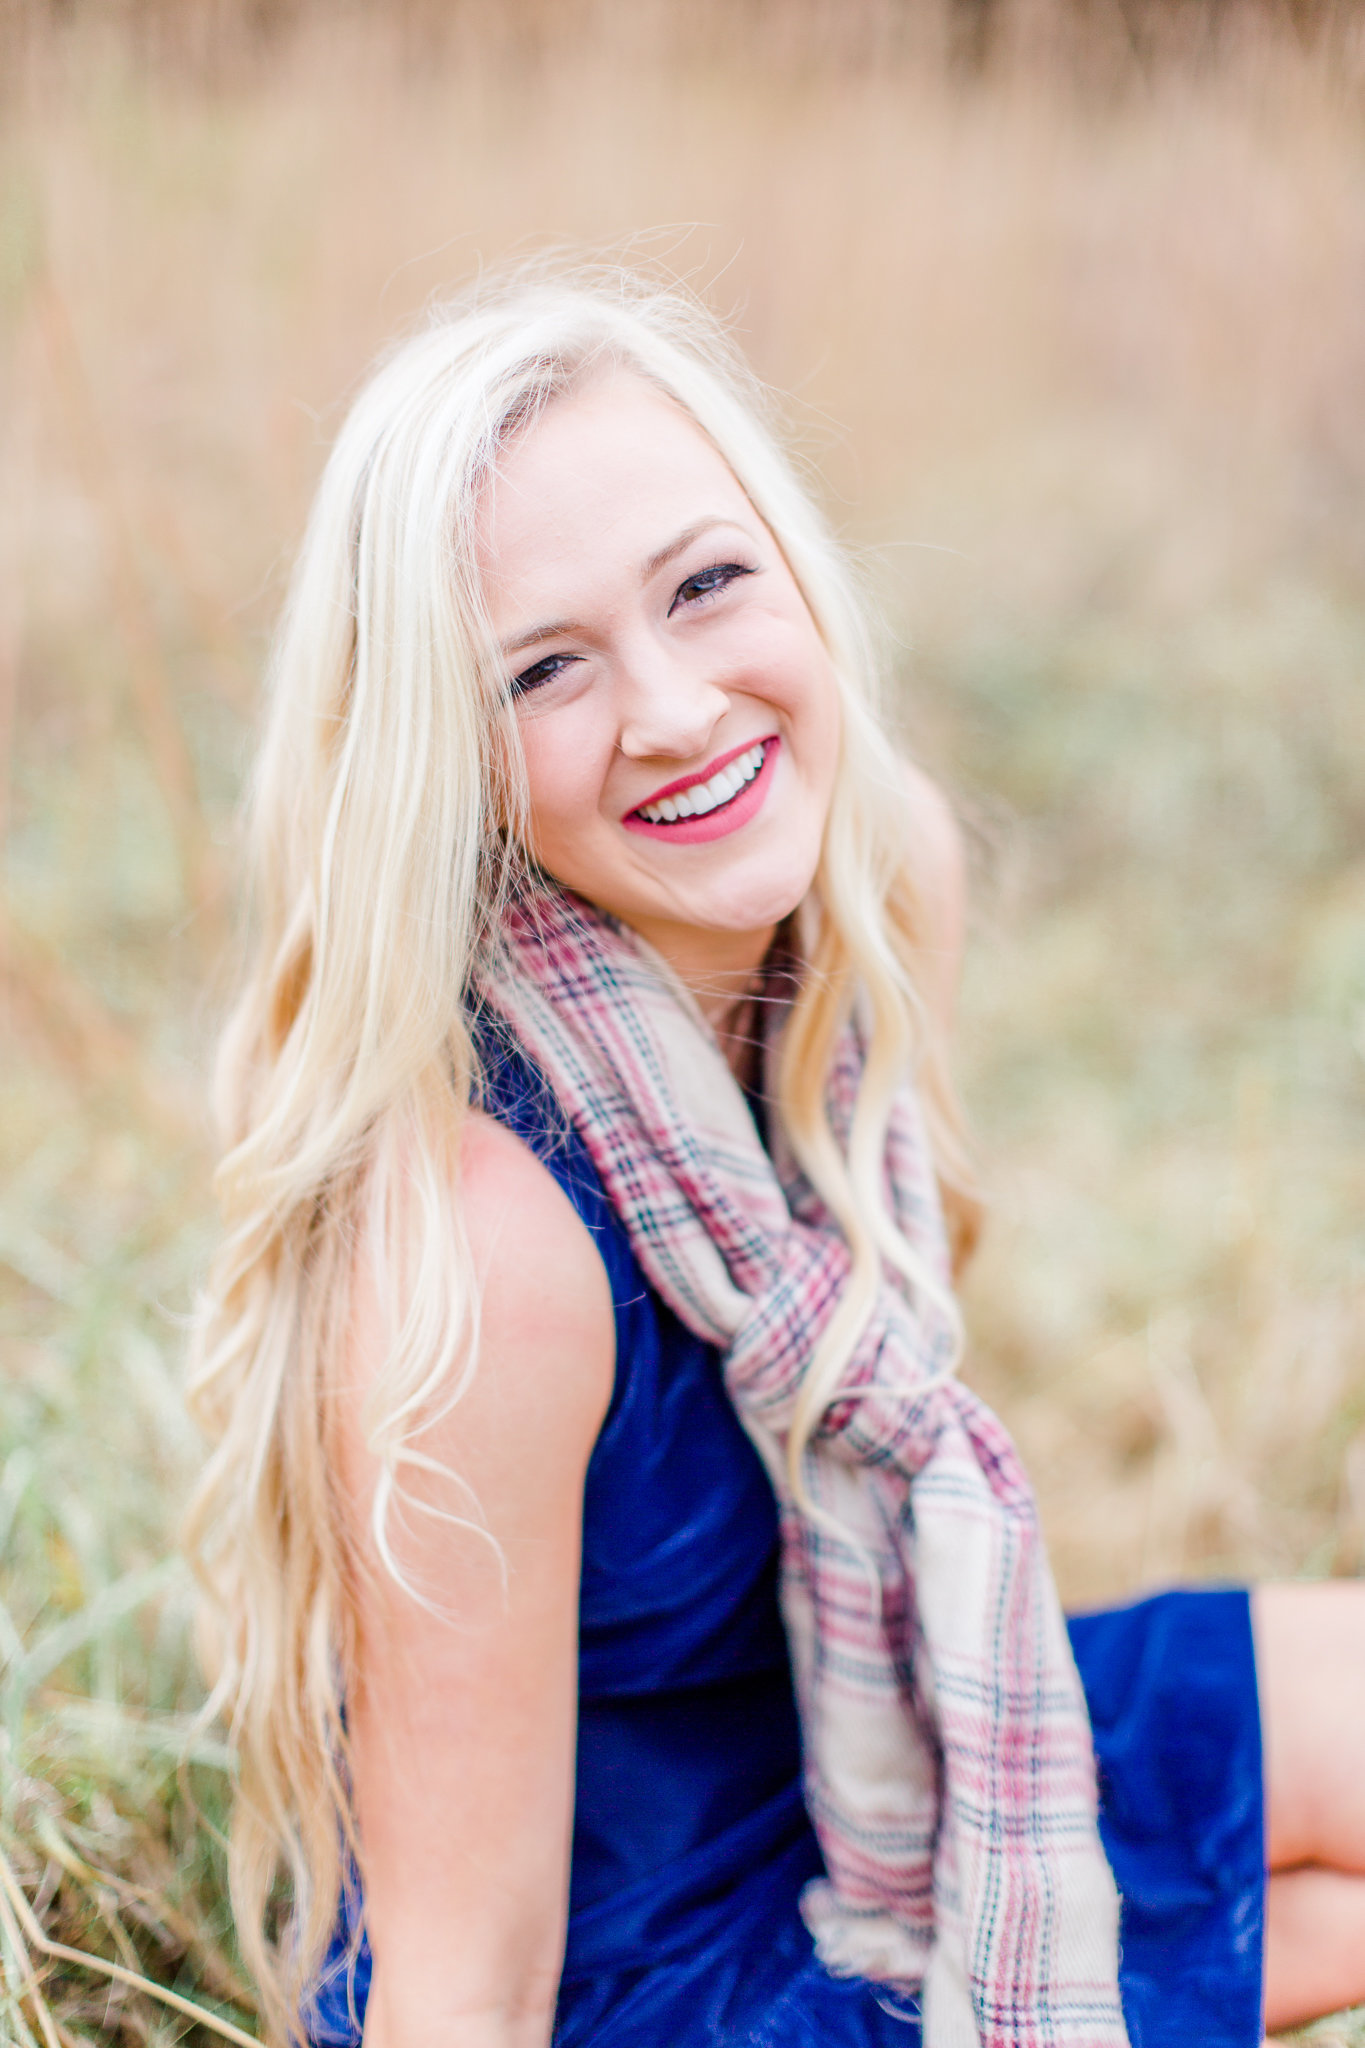 Tulsa-Oklahoma-Senior-Photographer-Holly-Felts-Photography-1